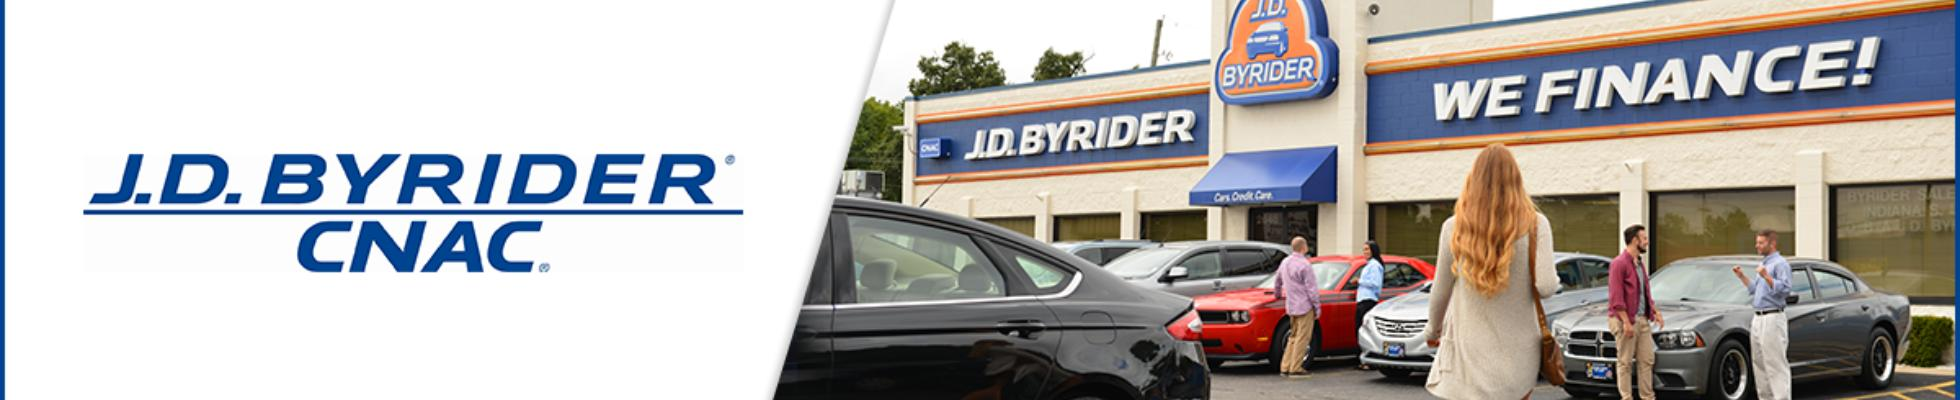 Working At J D Byrider 109 Reviews About Pay Benefits Indeed Com